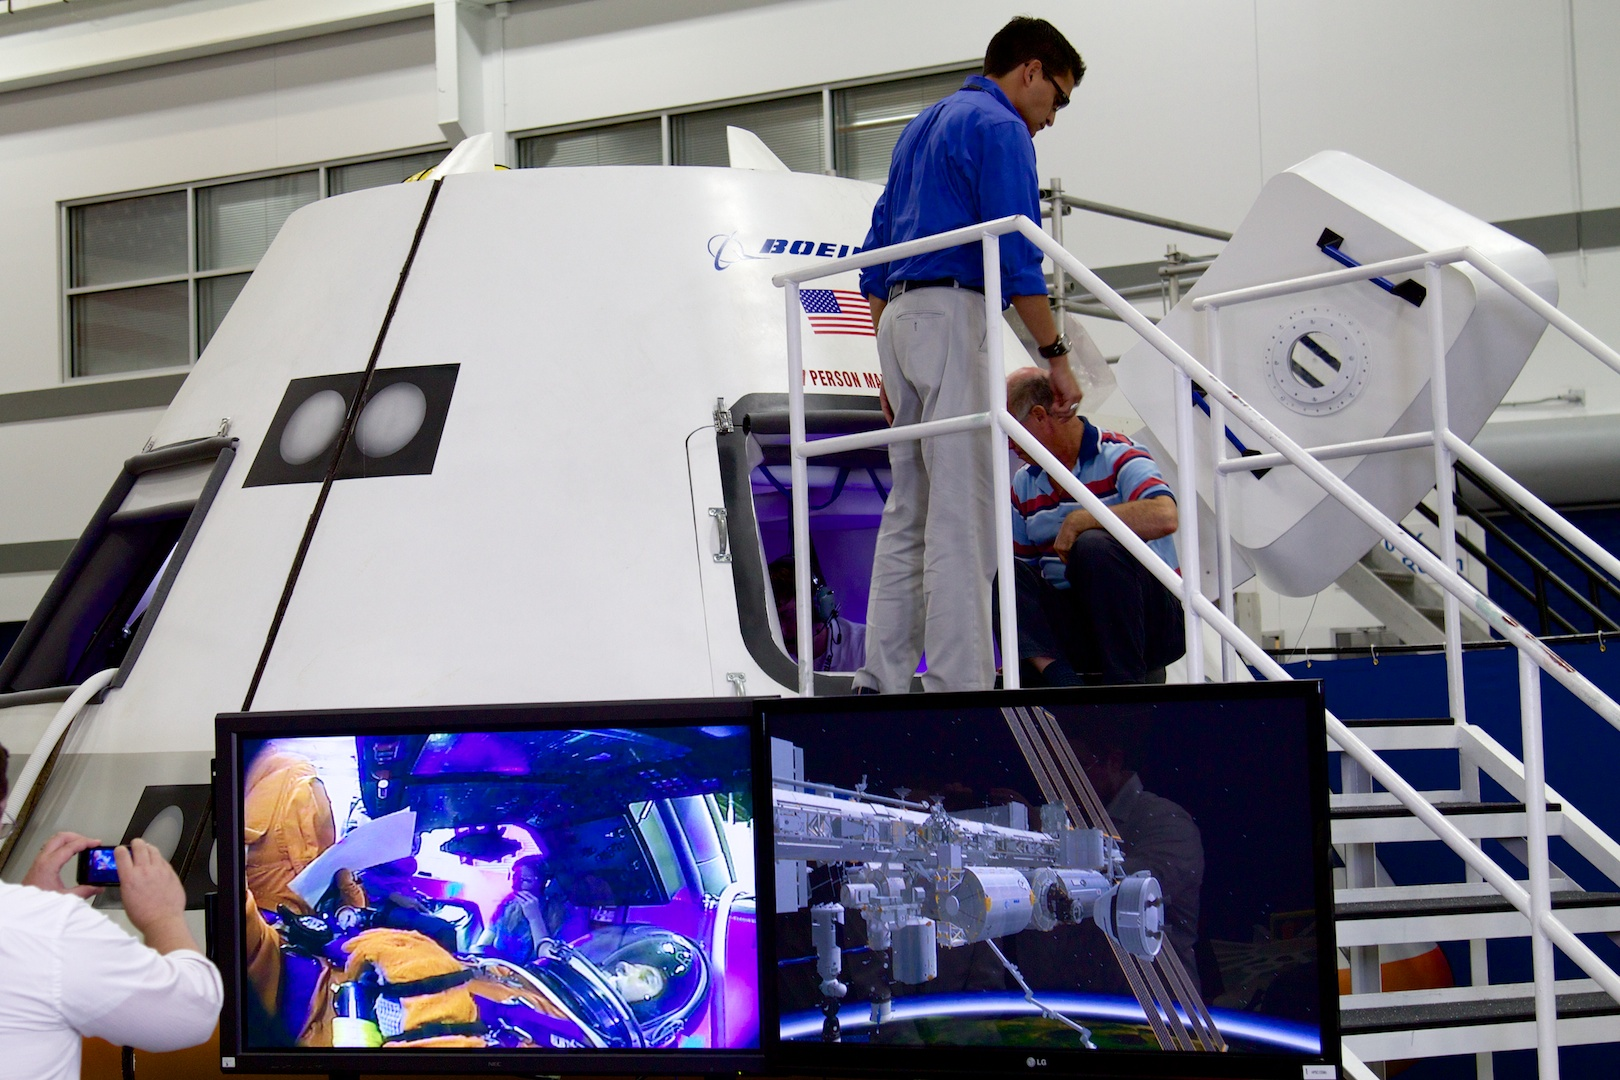 Watching astronaut Auñón on the monitors placed outside the mockup.